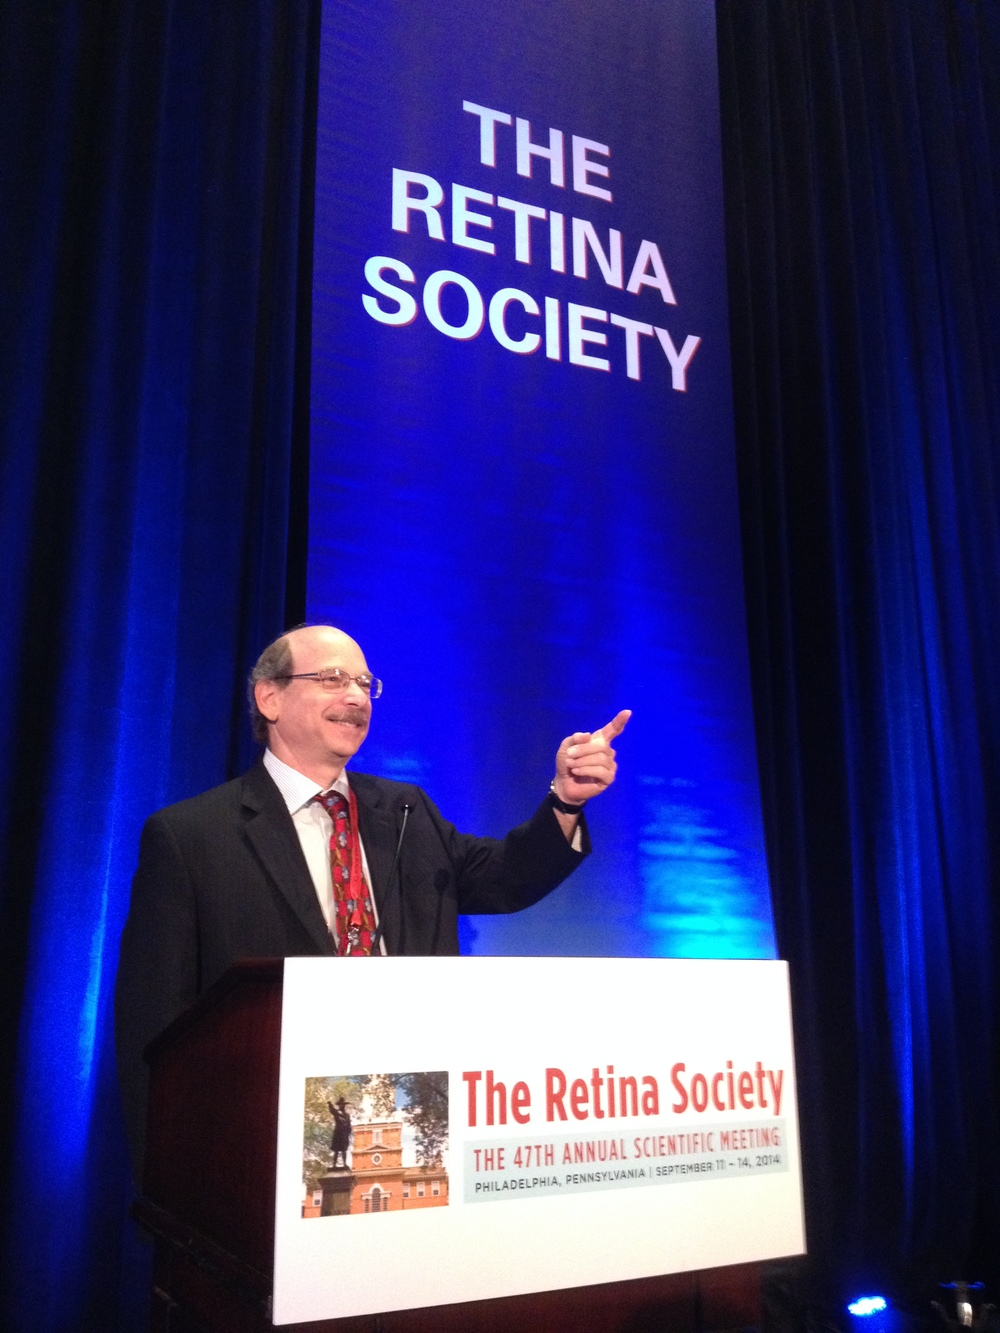 Dr. Frenkel presenting his findings at the     2014 Annual Meeting of The Retina Society